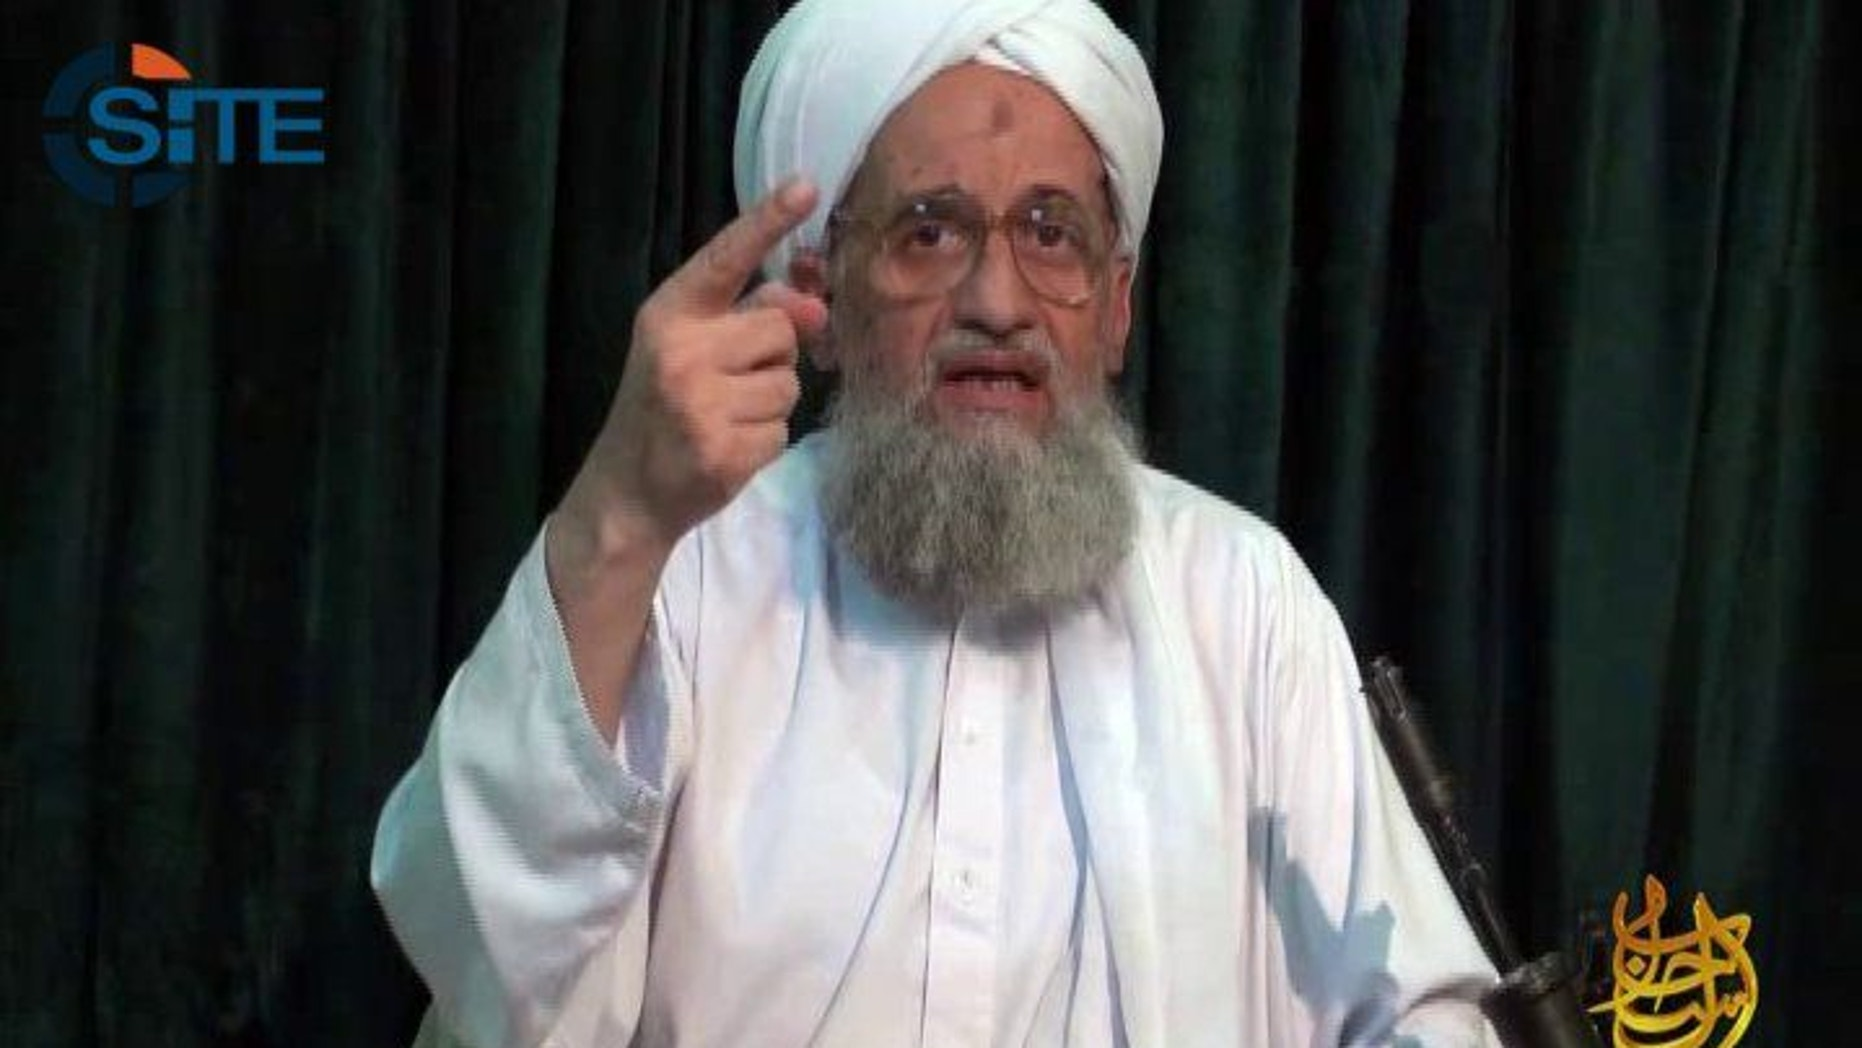 FILE -- In this undated file frame grab from video provided by IntelCenter, an American private terrorist threat analysis company, shows Al-Qaida's leader Ayman Al-Zawahri in a still image from a web posting by al-Qaida's media arm, as-Sahab, Wednesday July 27, 2011. Al-Qaida's leader has urged Muslims in Arab Spring countries to unite to institute an Islamic state, while warning France that its intervention in Mali will be bogged down, in a 103-minute audio message posted on militant websites late Saturday, April 6, 2013. In the recording, al-Zawahri urged Muslims to liberate their lands, apply Islamic law, halt the plundering of Muslim wealth, support rebellious Muslims and oppressed people worldwide, and establish the Islamic Caliphate, or religious state. (AP Photo/IntelCenter, File)  THE ASSOCIATED PRESS HAS NO WAY OF INDEPENDENTLY VERIFYING THE CONTENT, LOCATION OR DATE OF THIS PICTURE. NO SALES MANDATORY CREDIT, INTELCENTER